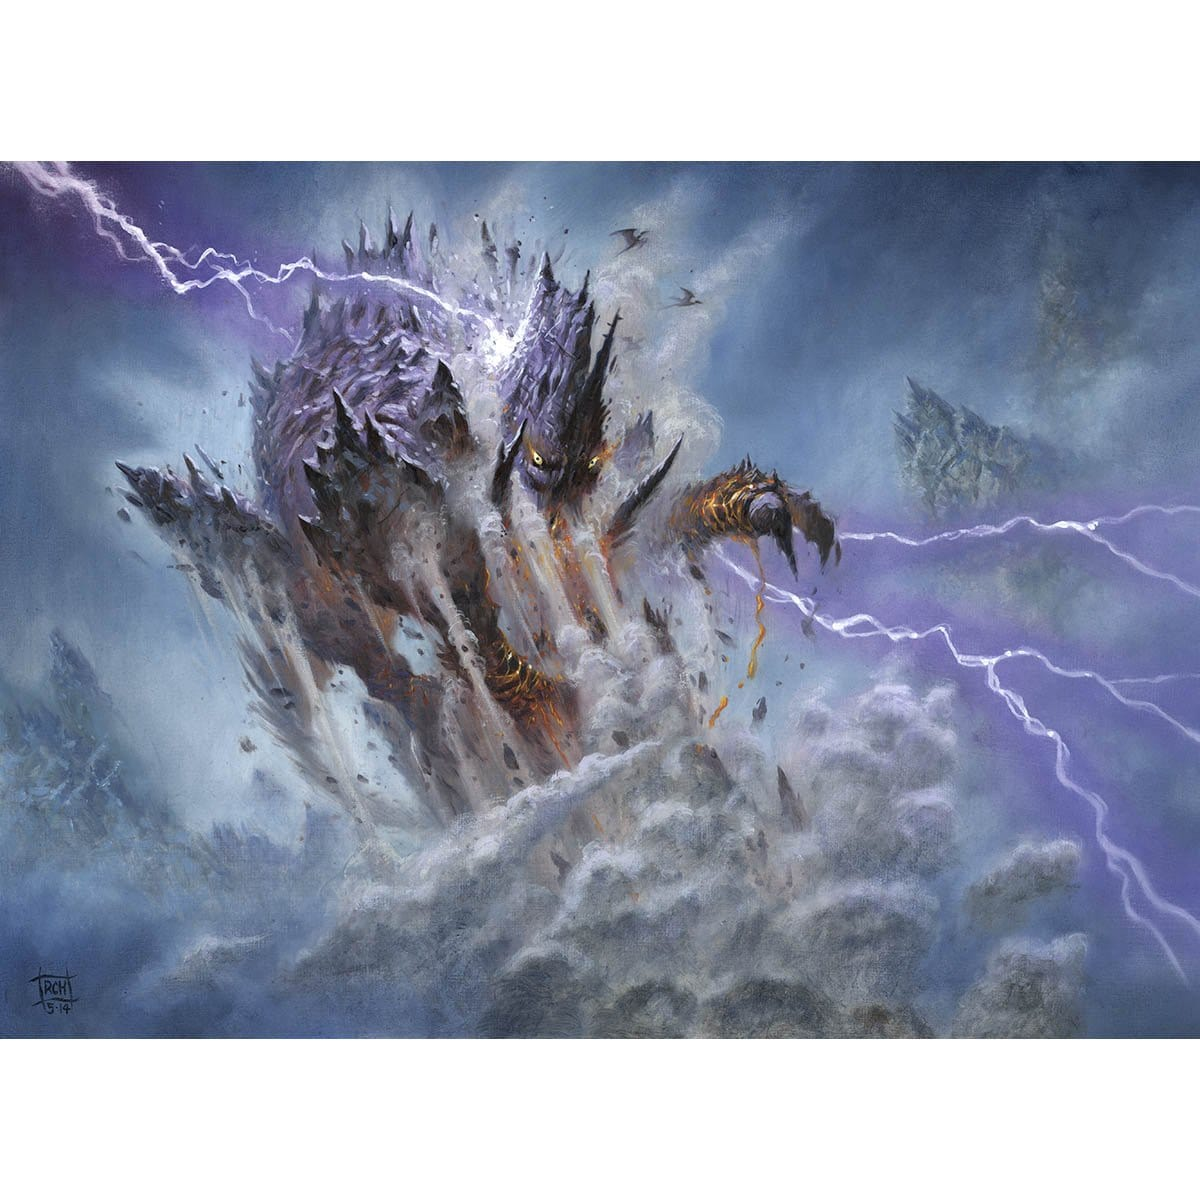 Stormcrag Elemental Print - Print - Original Magic Art - Accessories for Magic the Gathering and other card games